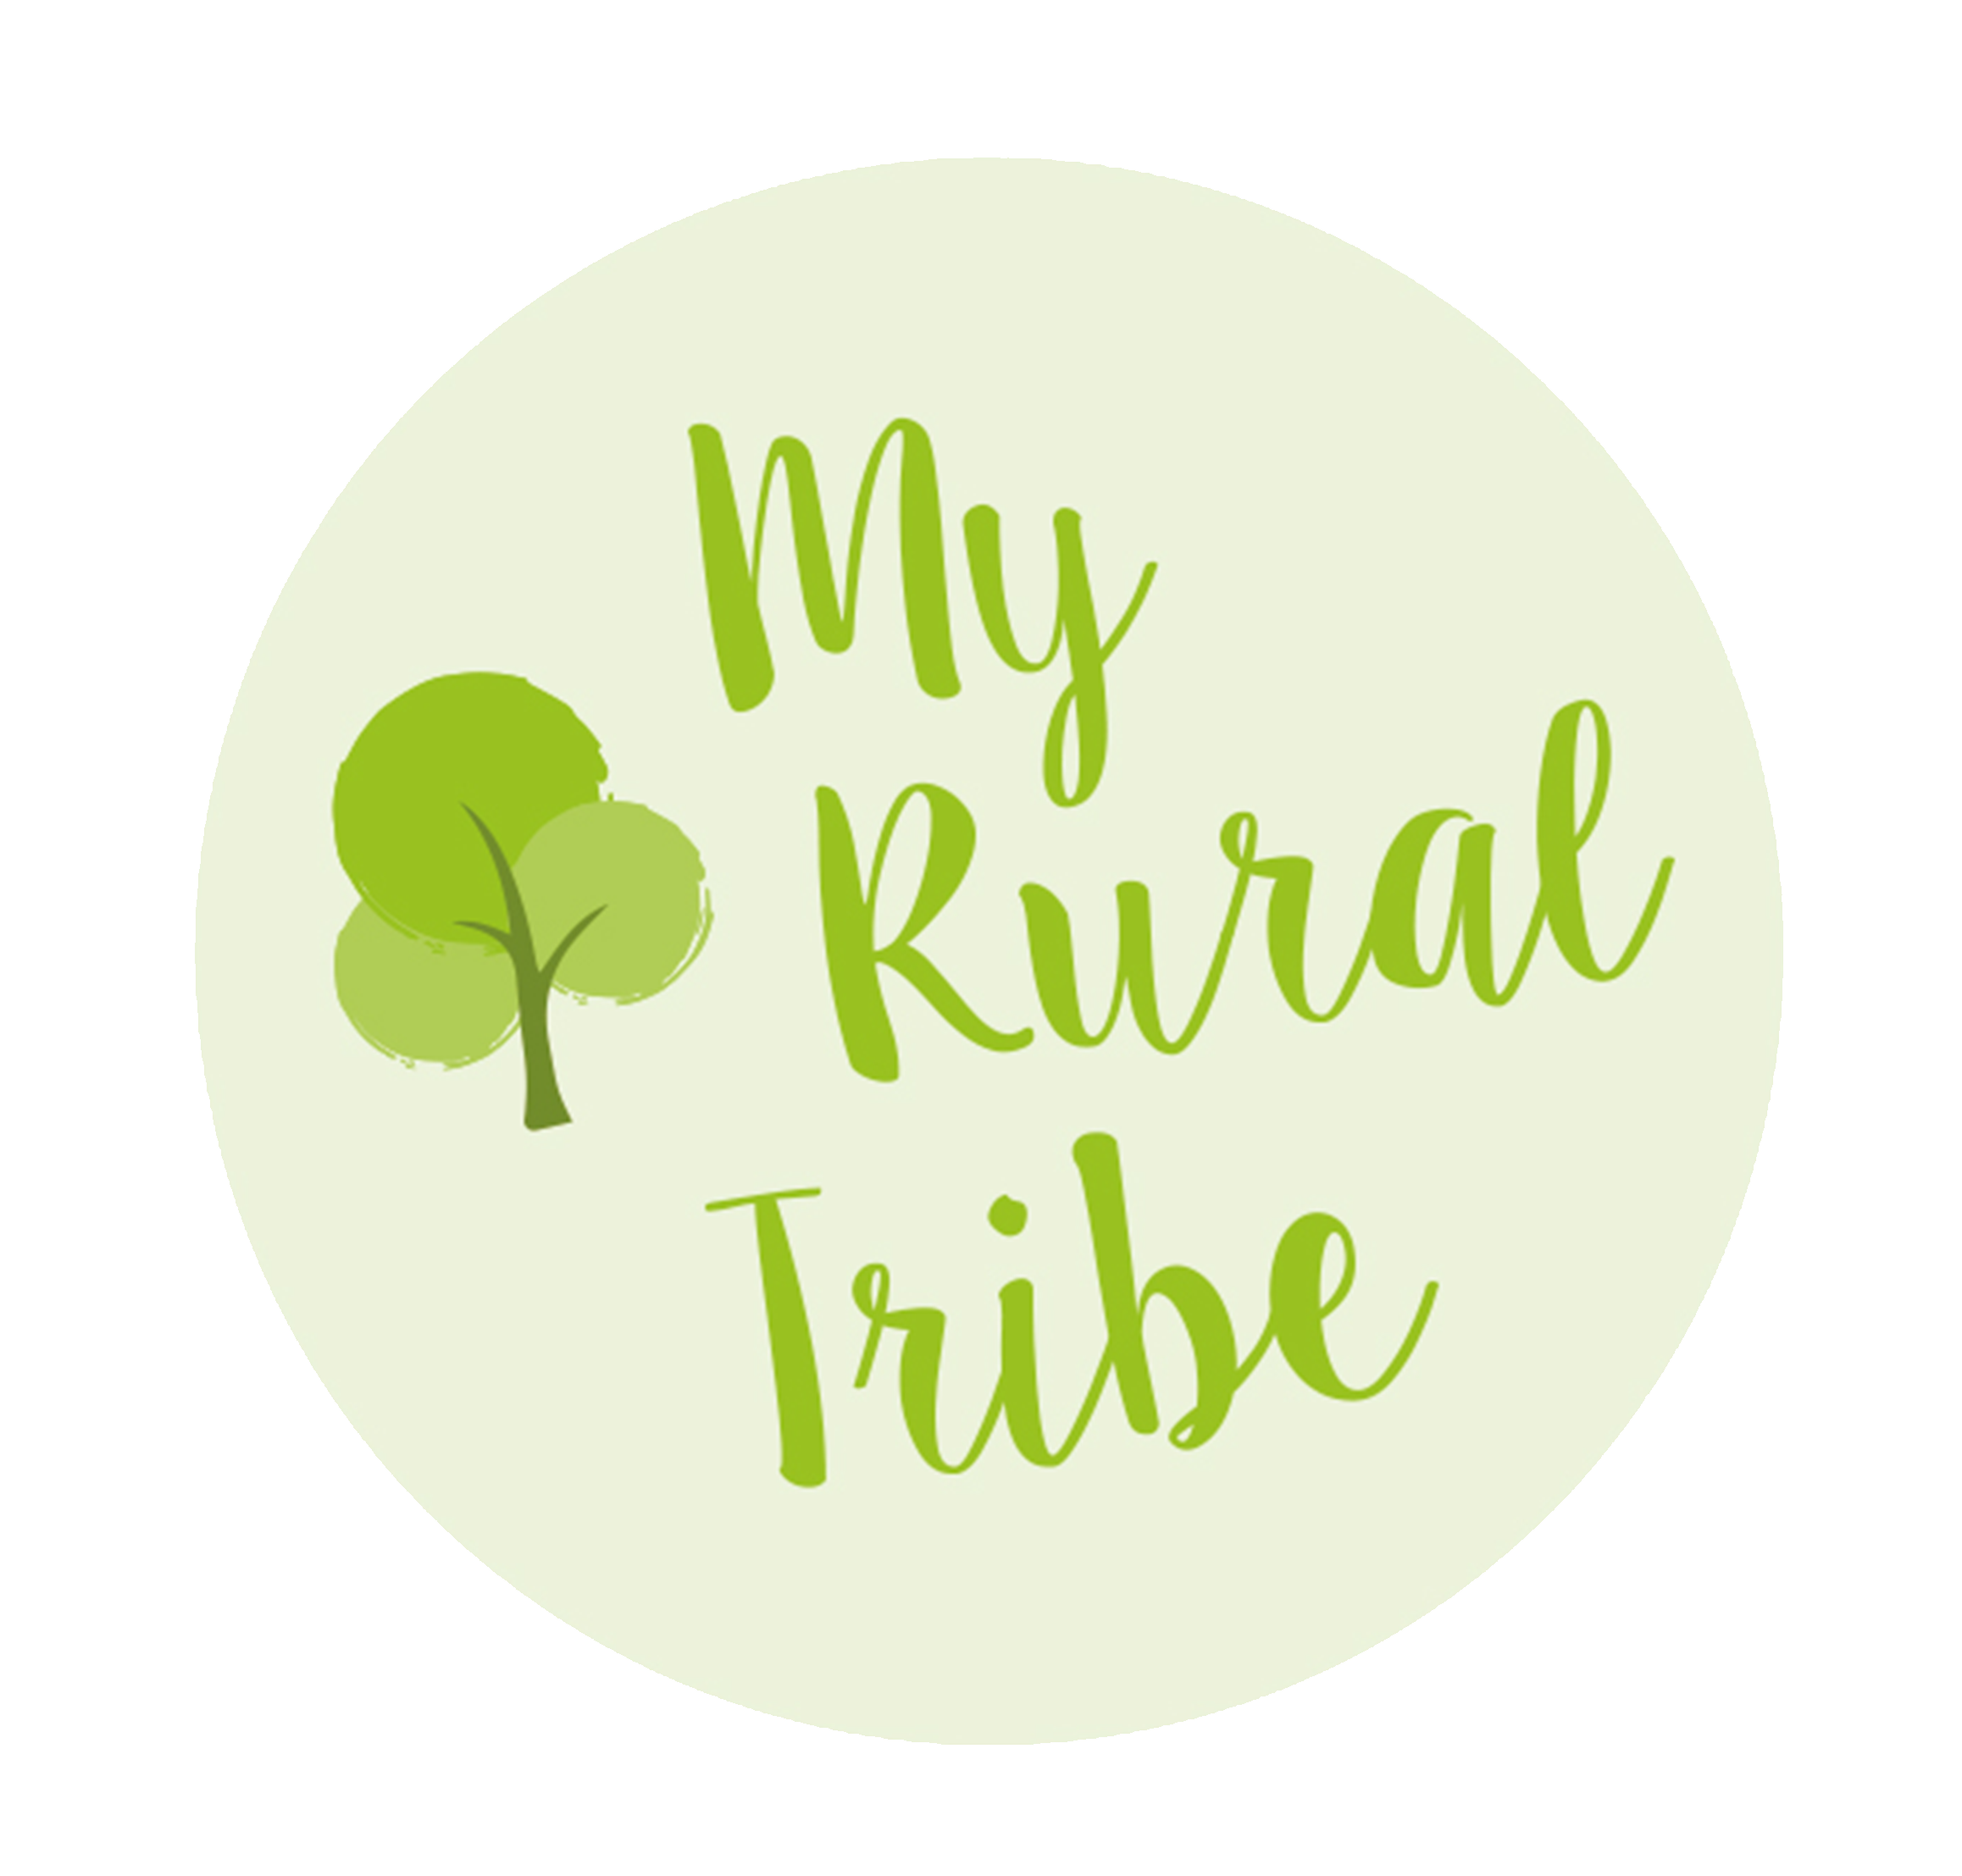 My Rural Tribe logo